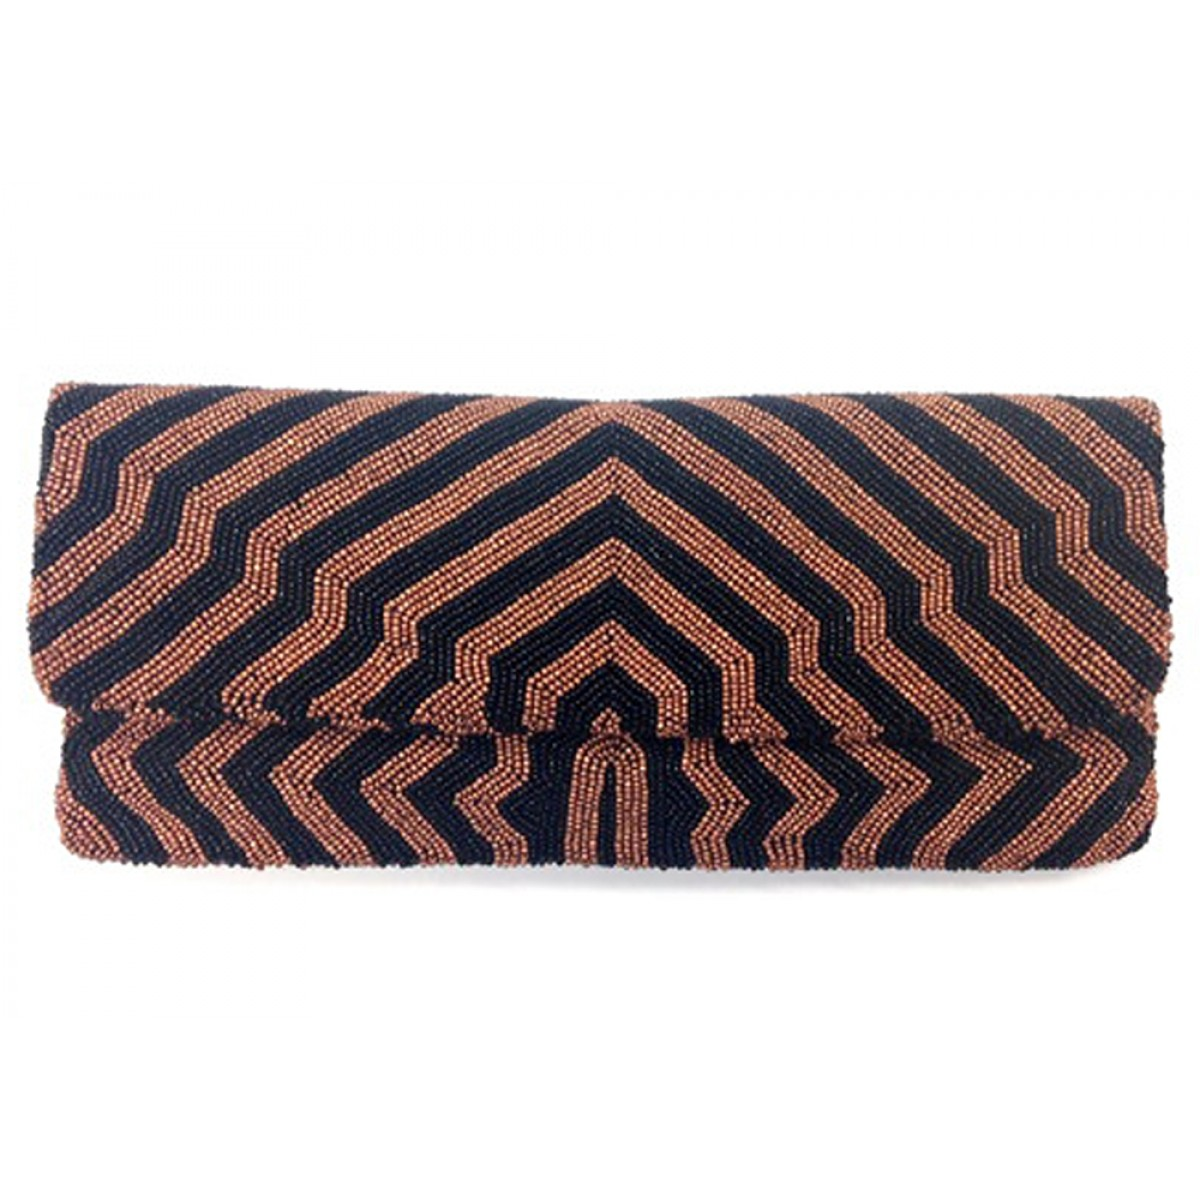 Long Fold Over Clutch